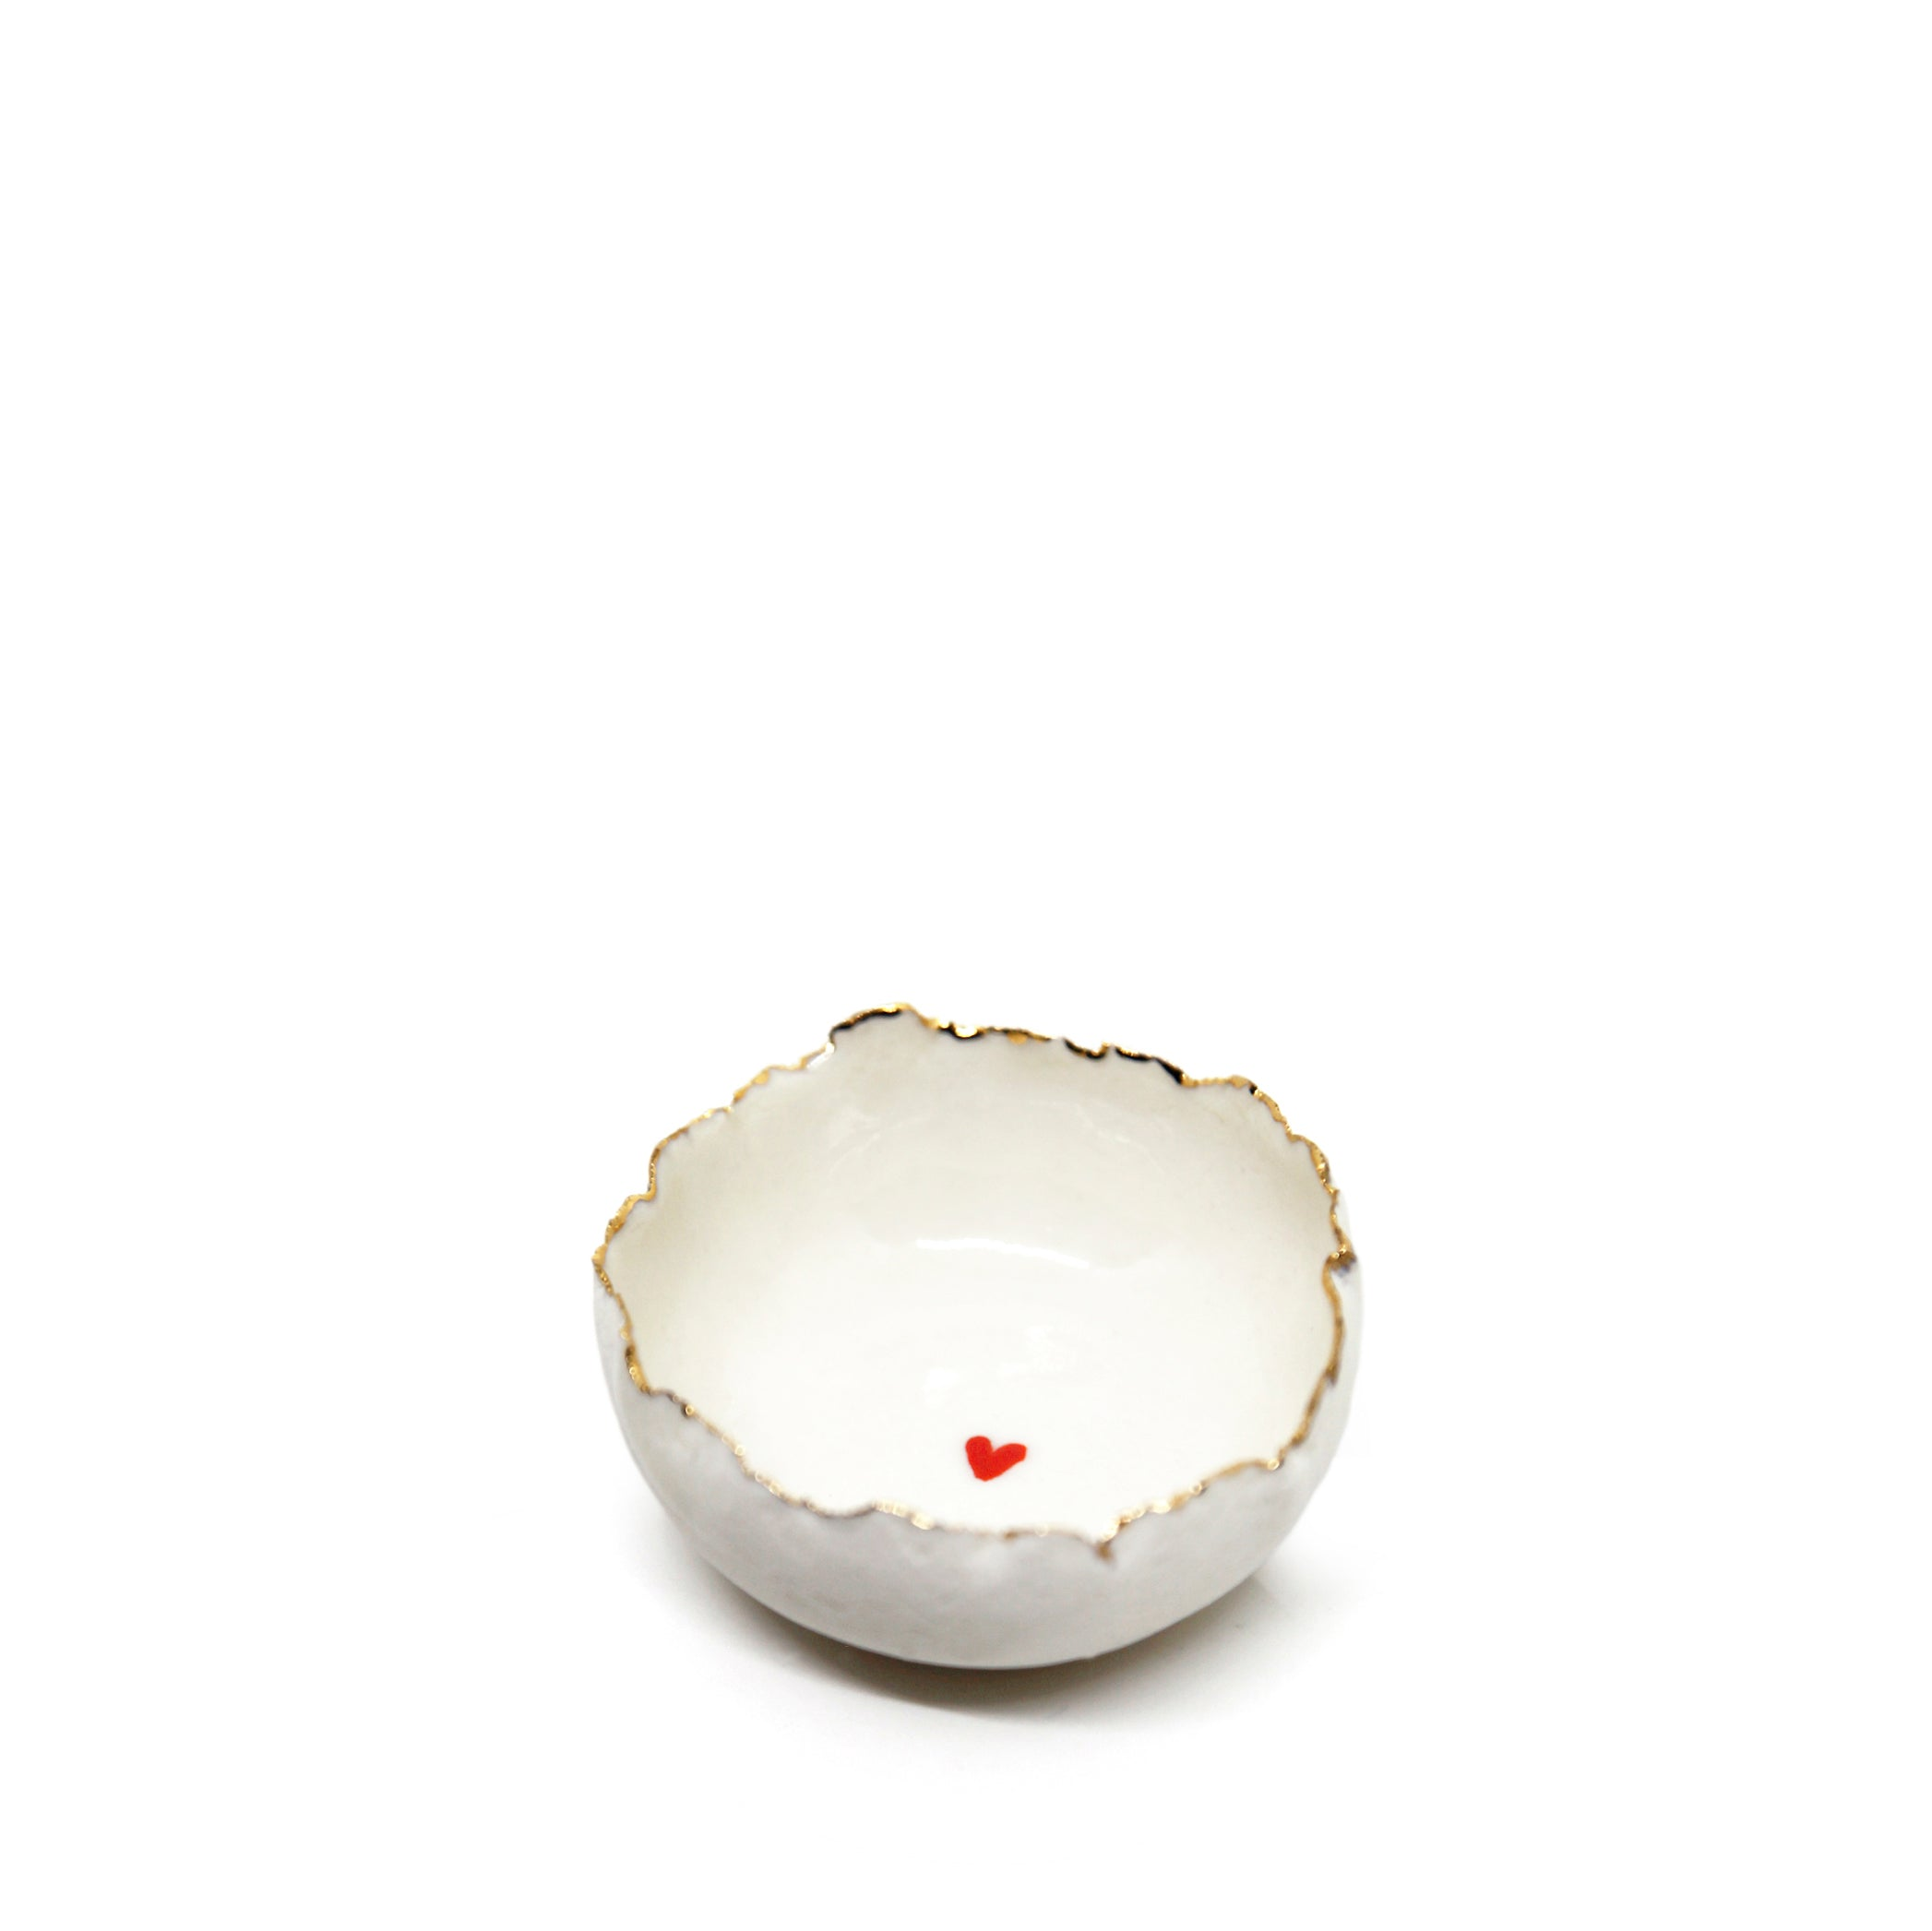 HB Jagged Bowl with Heart, 7cm